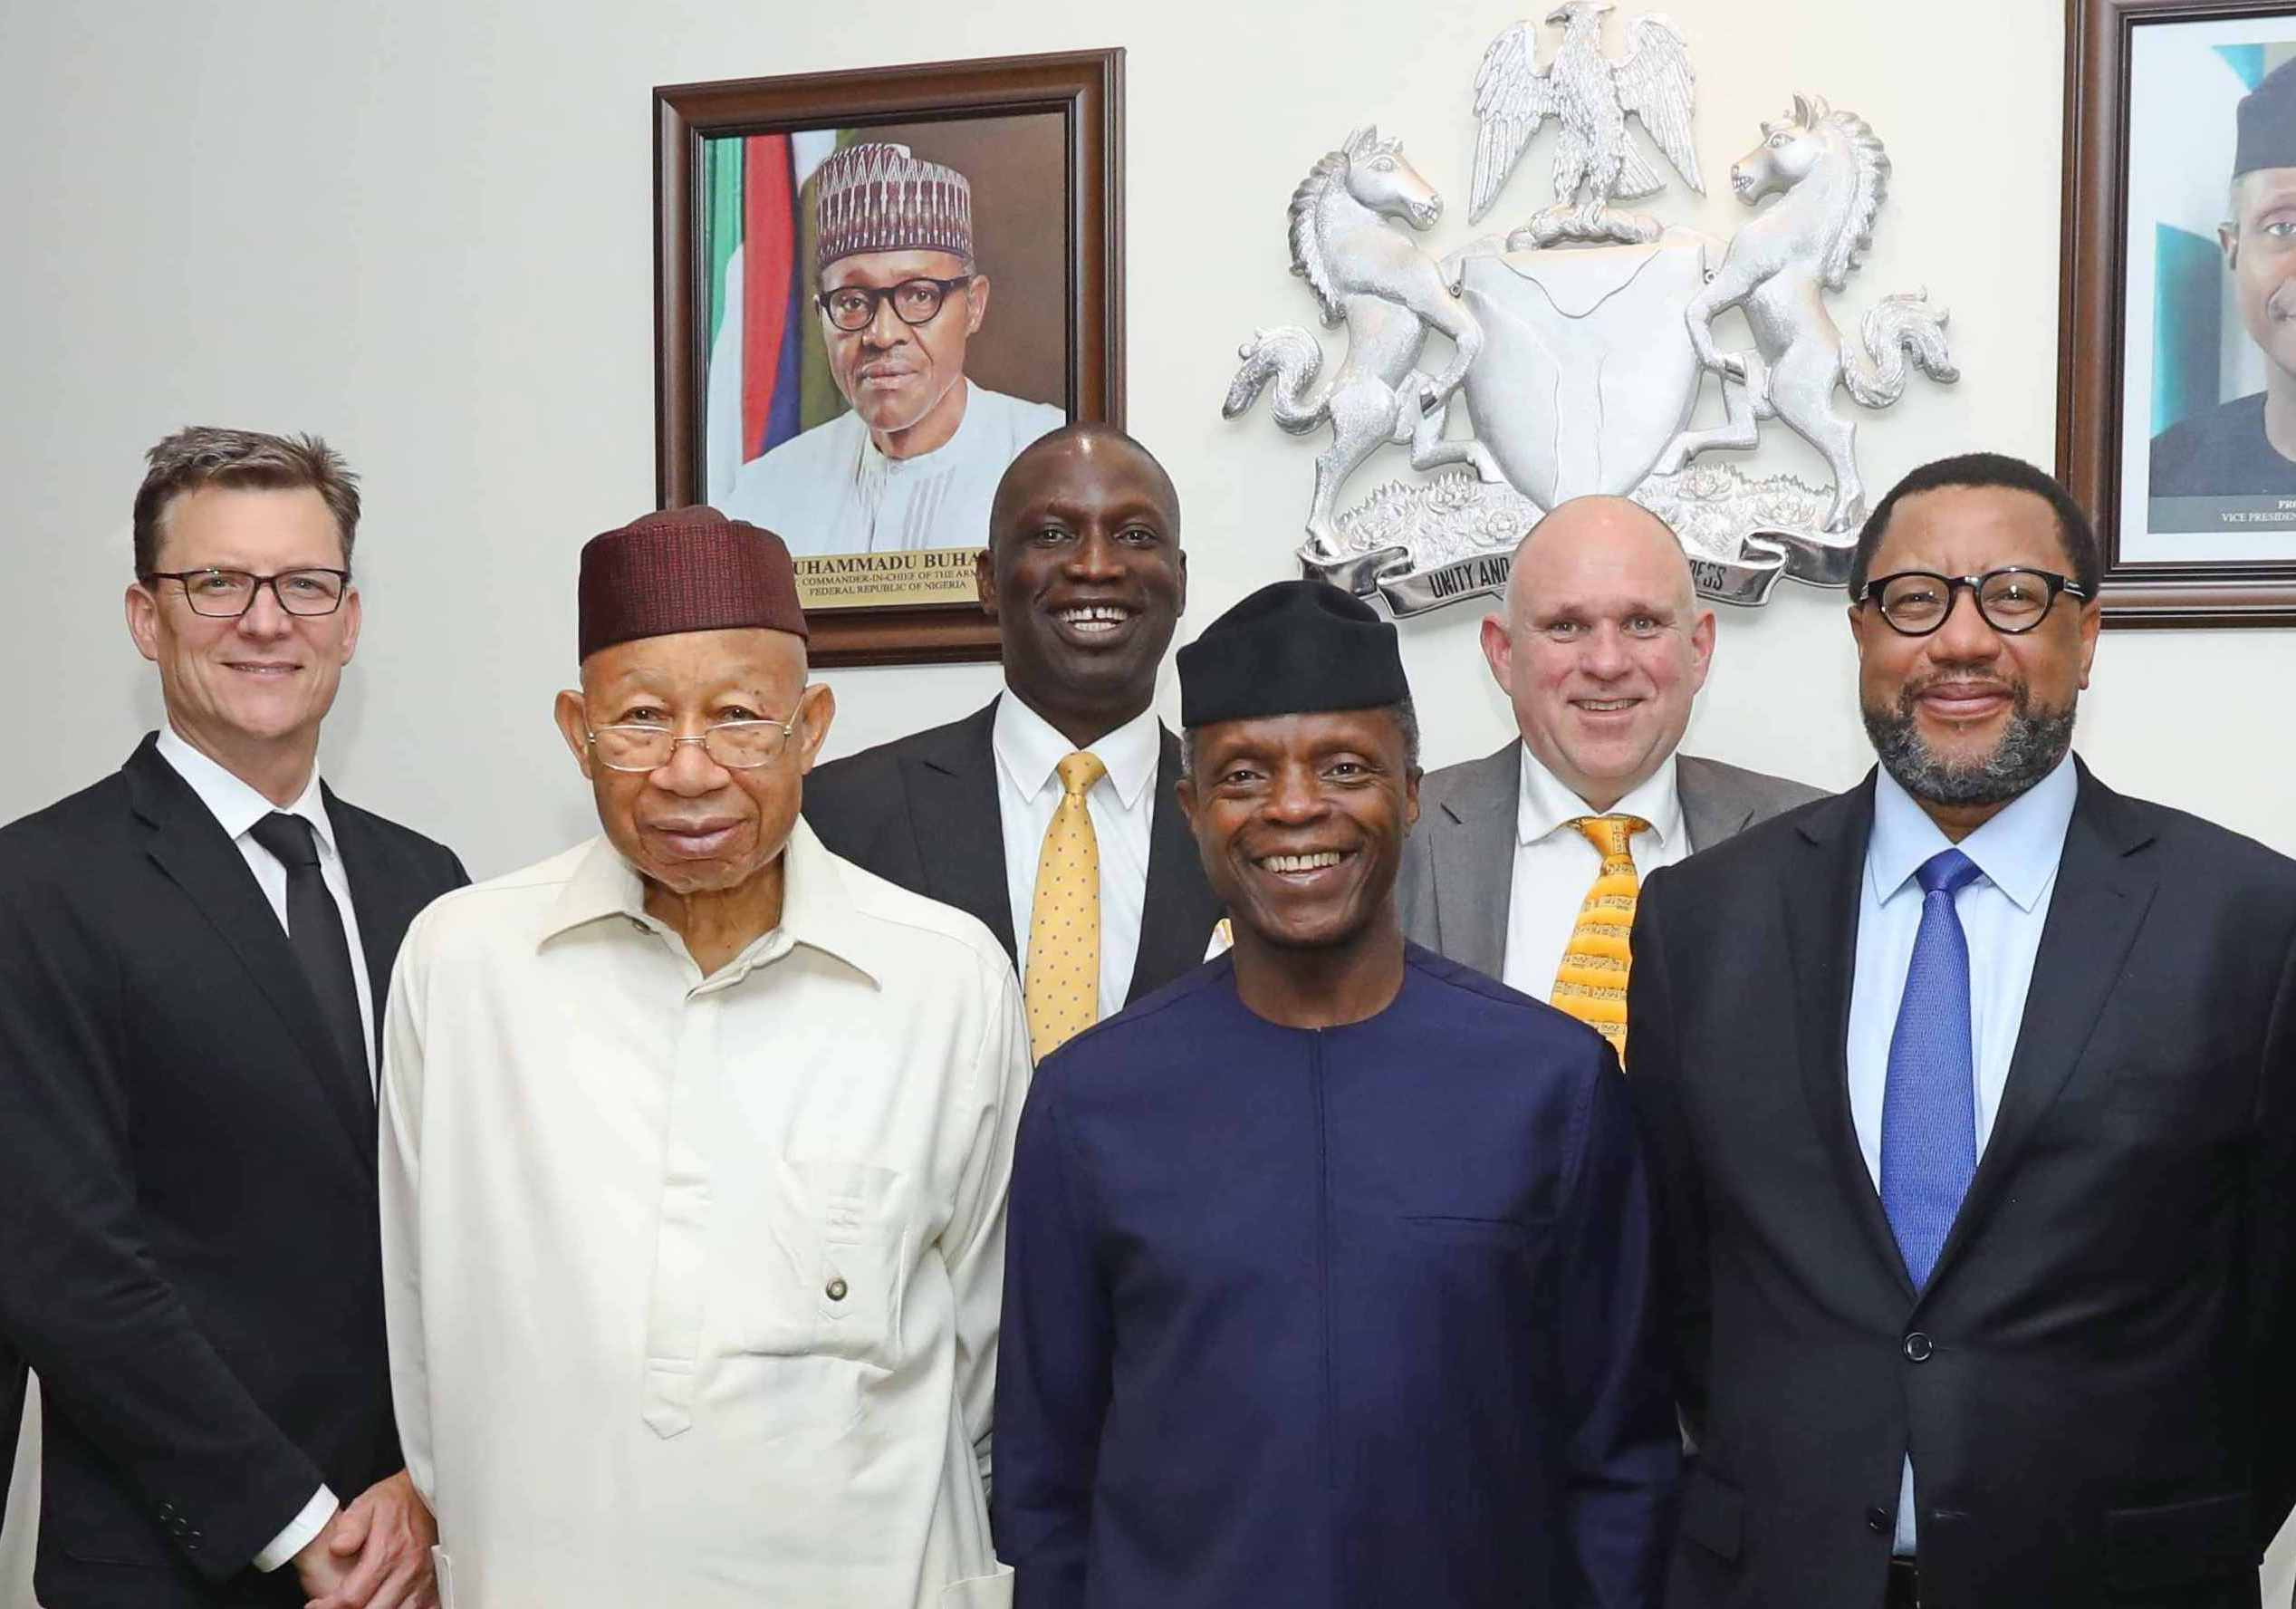 L-R: Rob Shuter, Group Chief Executive Officer/President MTN; Dr. Pascal Dozie, Chairman MTN Nigeria; Tobechukwu Okigbo, Corporate Relations Executive, MTN Nigeria; Professor Yemi Osinbajo, Vice President of the Federal Republic of Nigeria; Ferdinand Moolman, Chief Executive Officer, MTN Nigeria and Phuthuma Nkhleko, Group Chairman, MTN during a courtesy visit to the Vice President in Abuja yesterday.